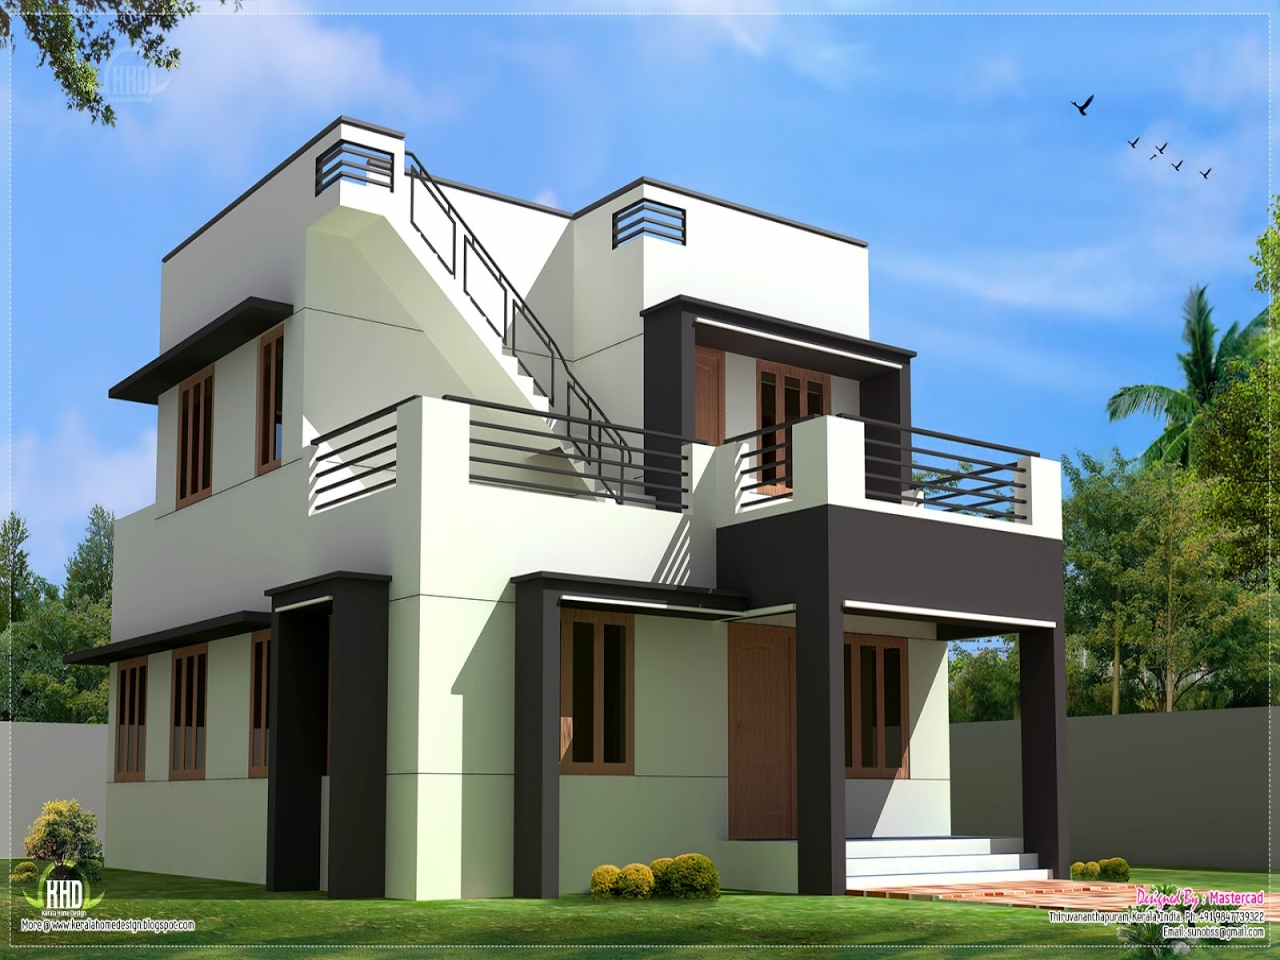 Collection 50 beautiful narrow house design for a 2 story for Beautiful small house plans